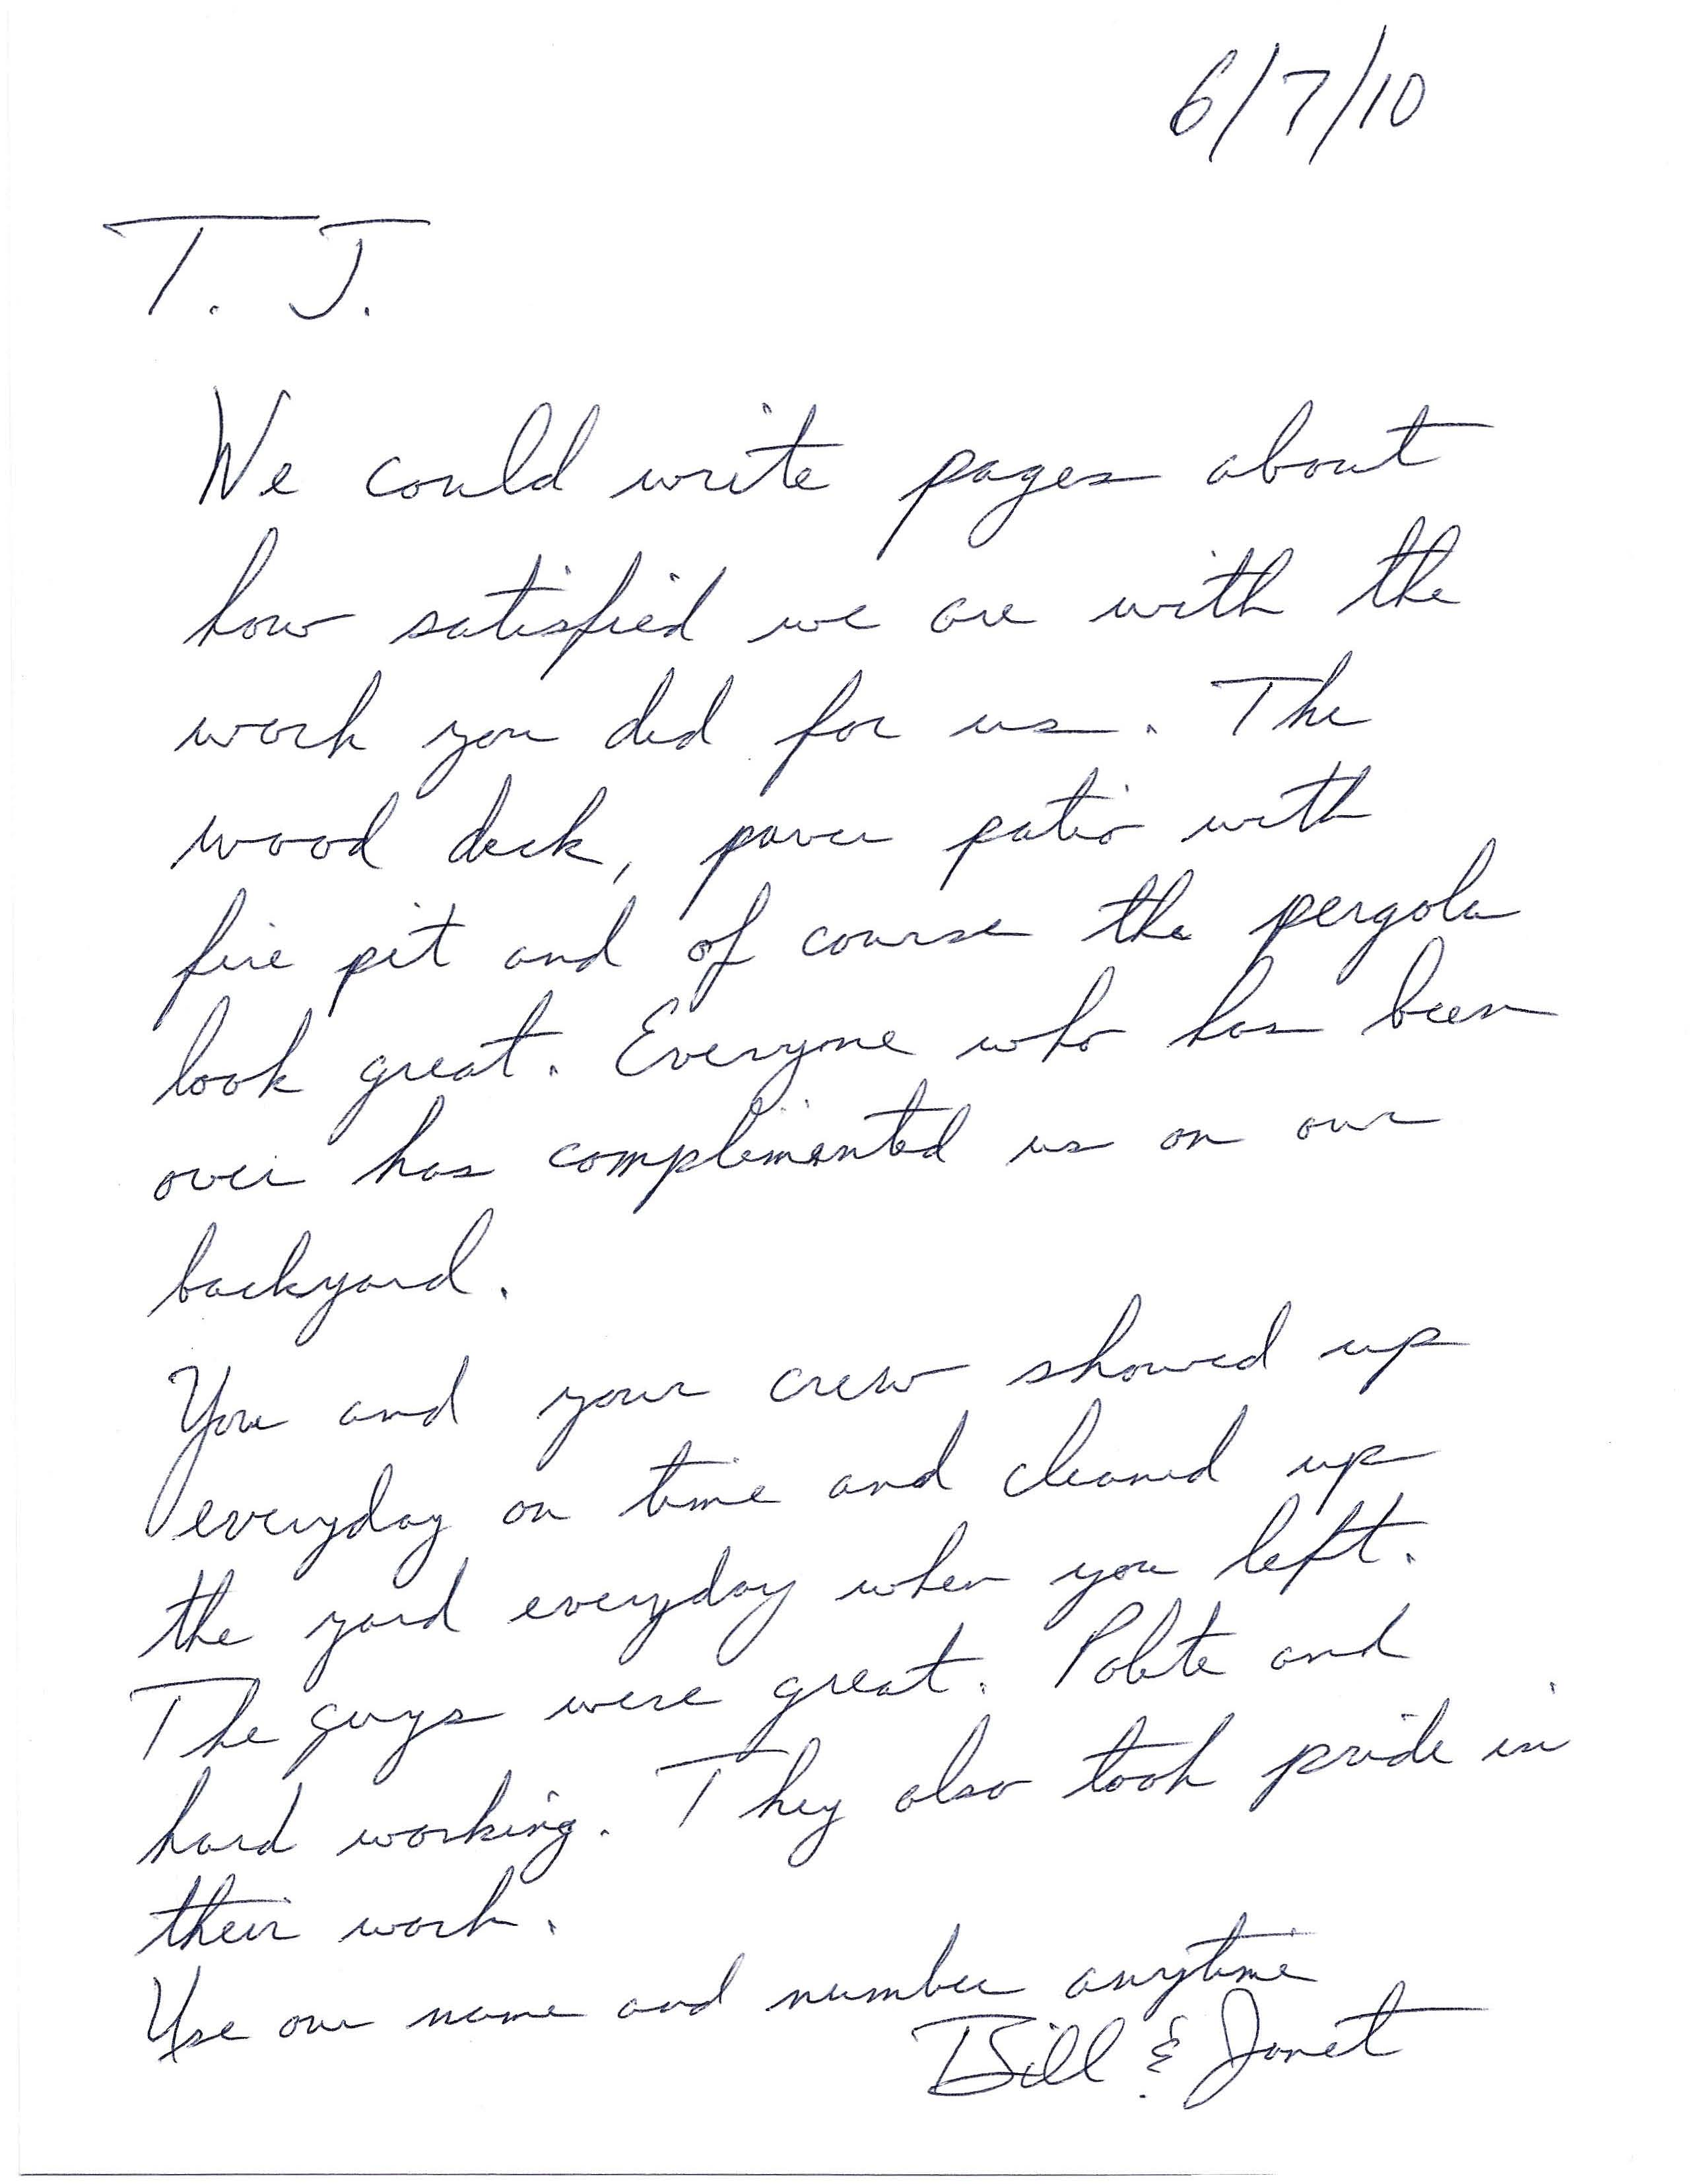 T.J. We could write pages about how satisfied we are with the work you did for us. The wood deck, paver patio with fire pit and of course the pergola look great. Everyone who has been over has complimented us on our backyard. You and your crew showed up every day on time and cleaned up the yard every day when you left. The guys were great. Polite and hard working. They also took pride in their work. Use our name and number anytime. Bill & Janet